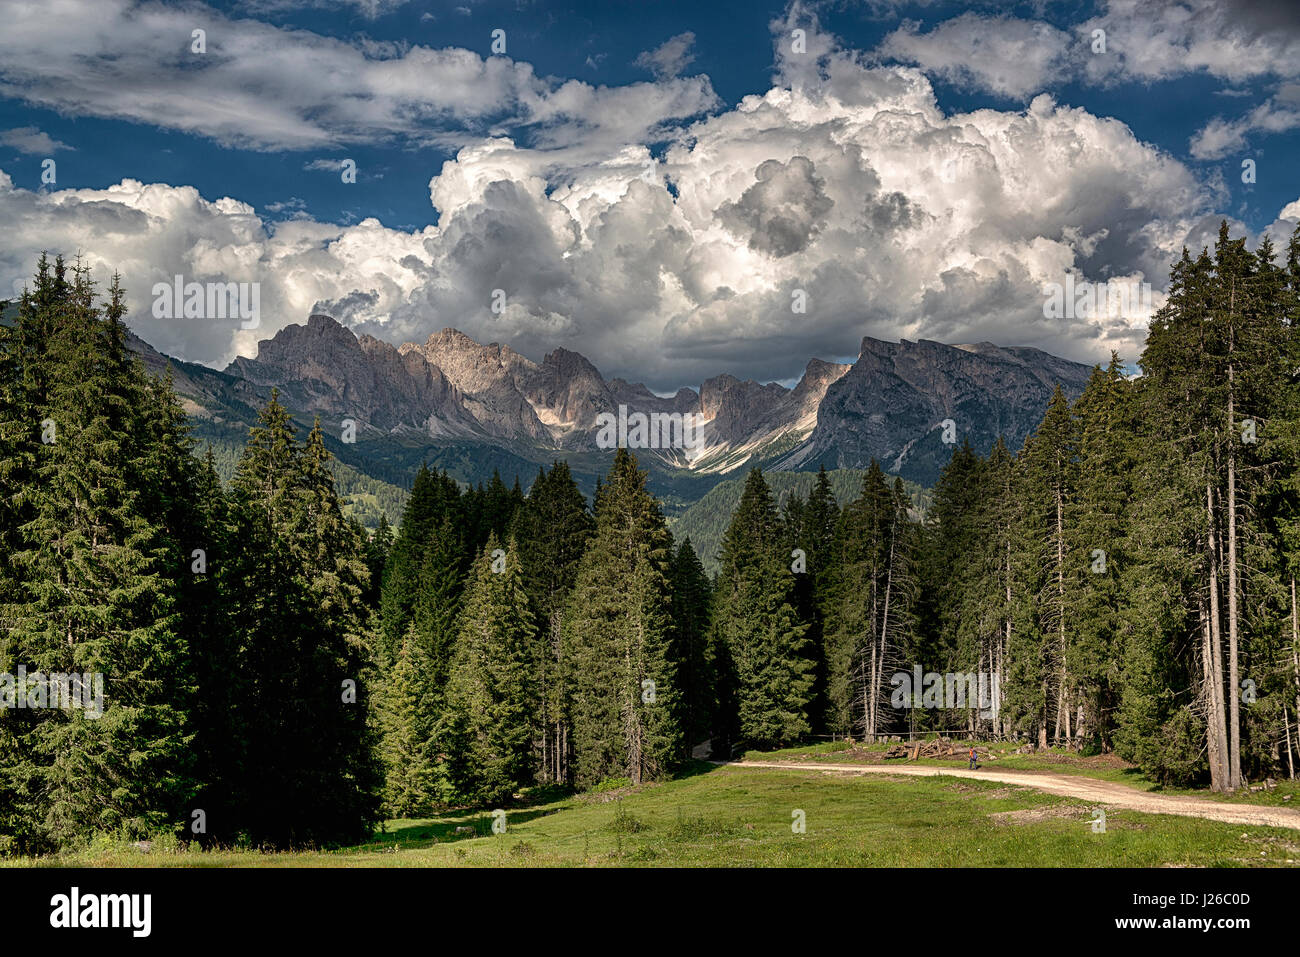 Summer landscape in the italian alps with clouds over the Odle mountains, Dolomiti - Trentino-Alto Adige - Stock Image